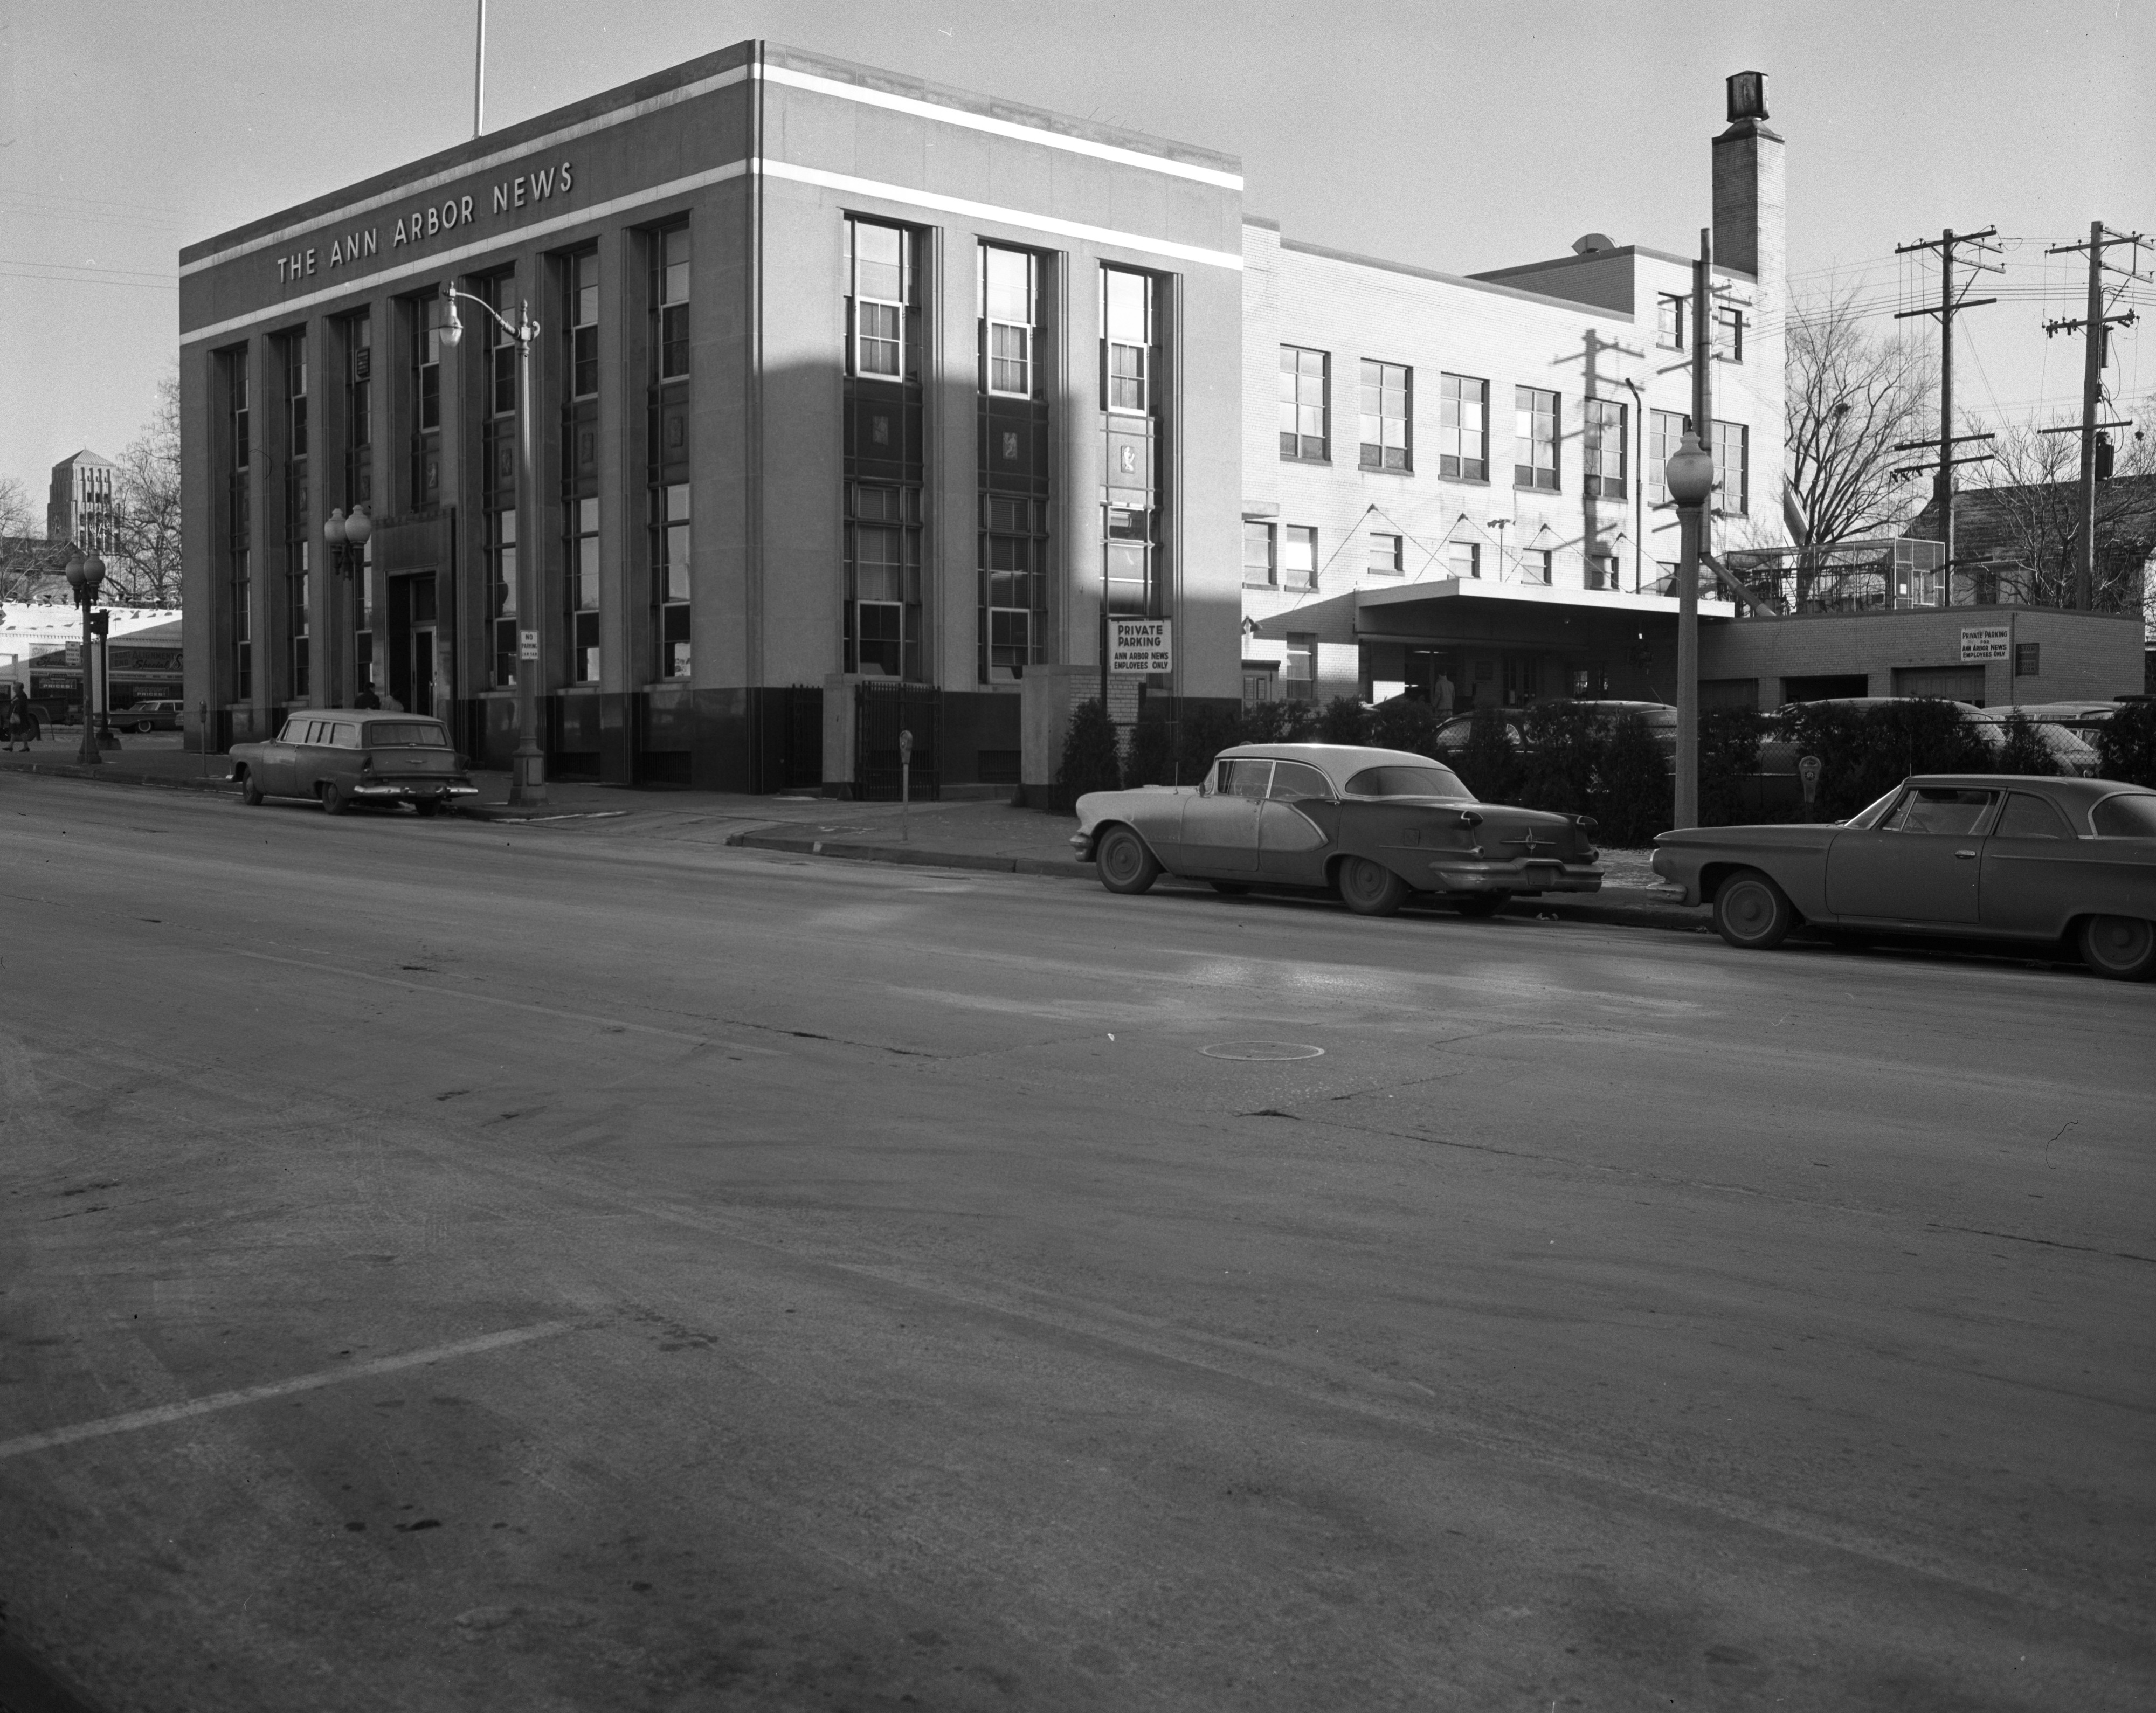 Front and West Side of Ann Arbor News Building, December 1960 image